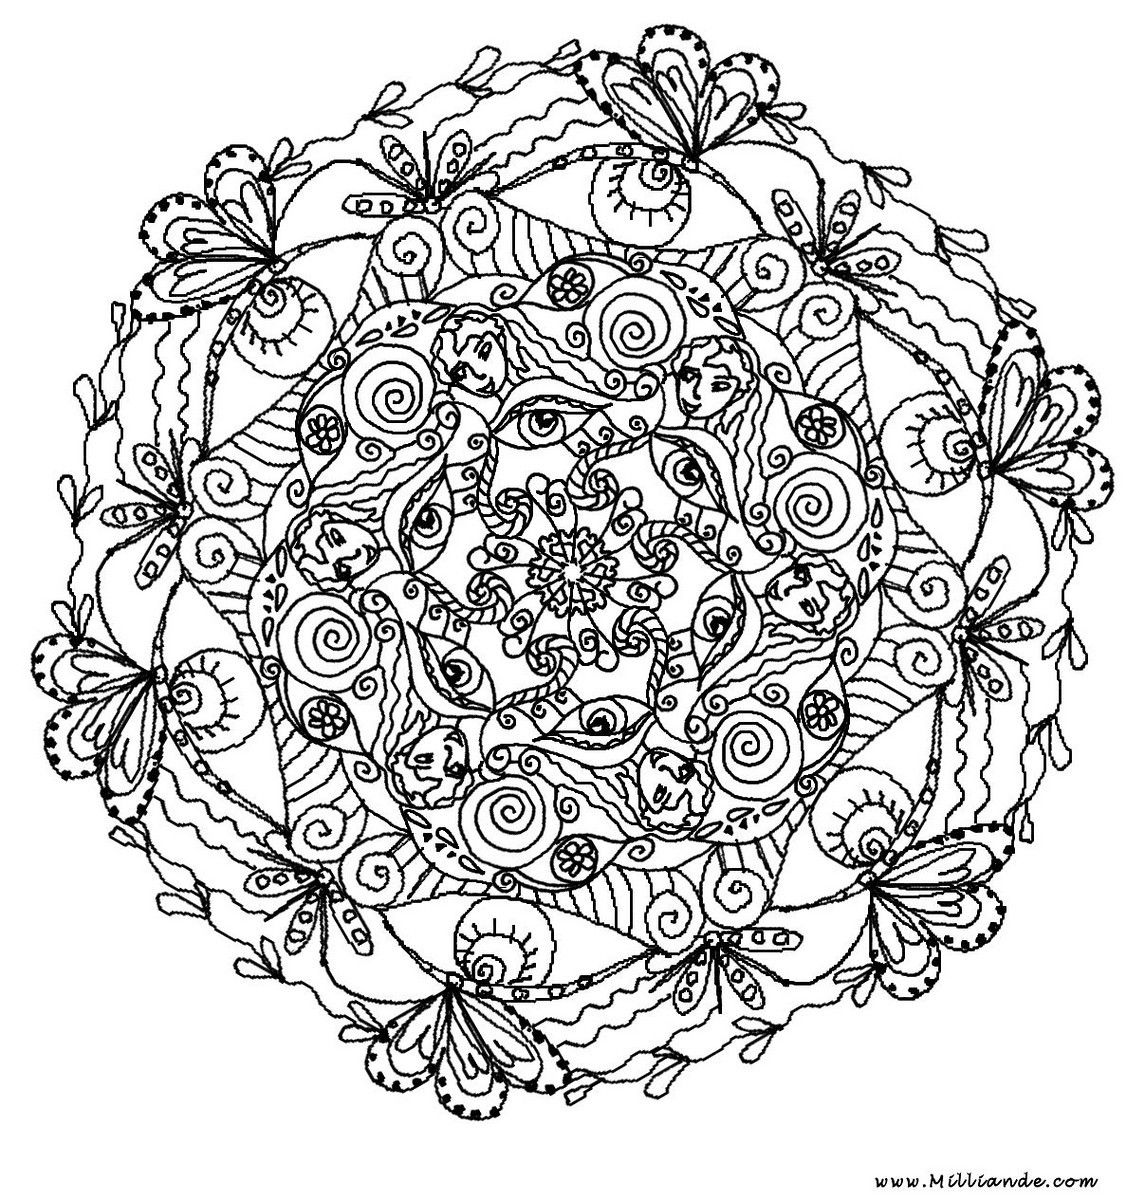 complex mandala coloring pages printable - Google Search | Mandalas ...